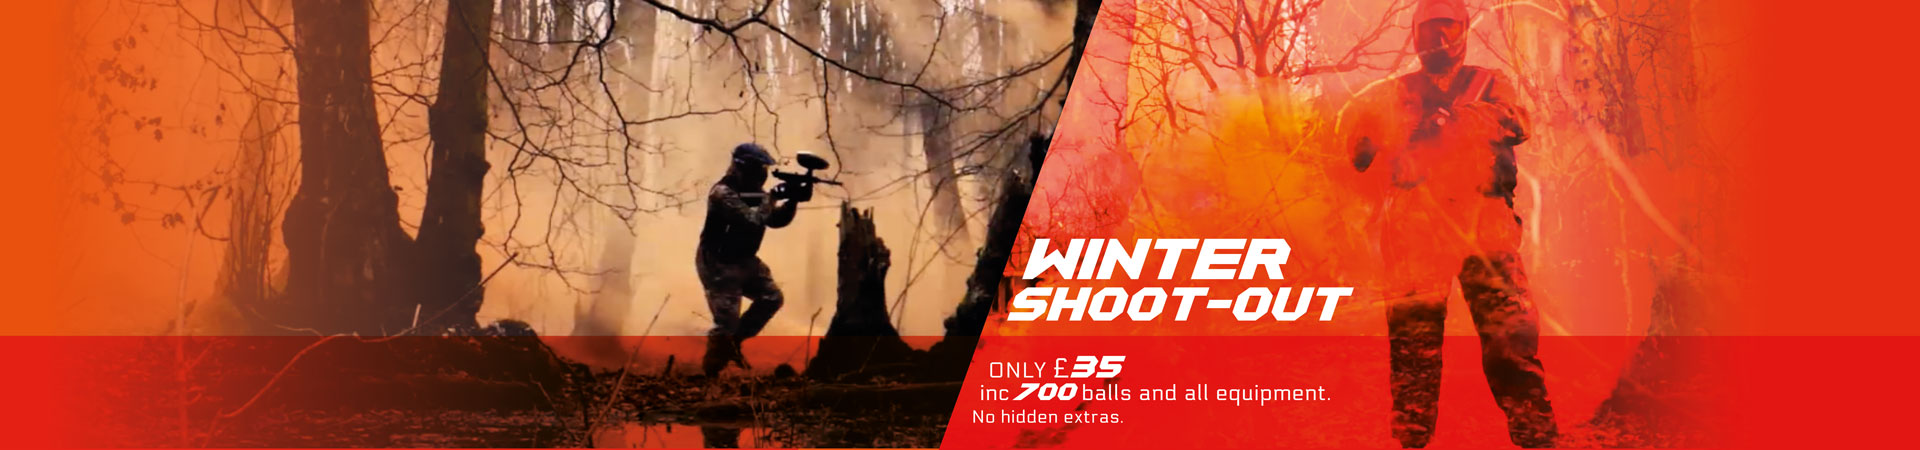 autumn shoot out special paintball deal